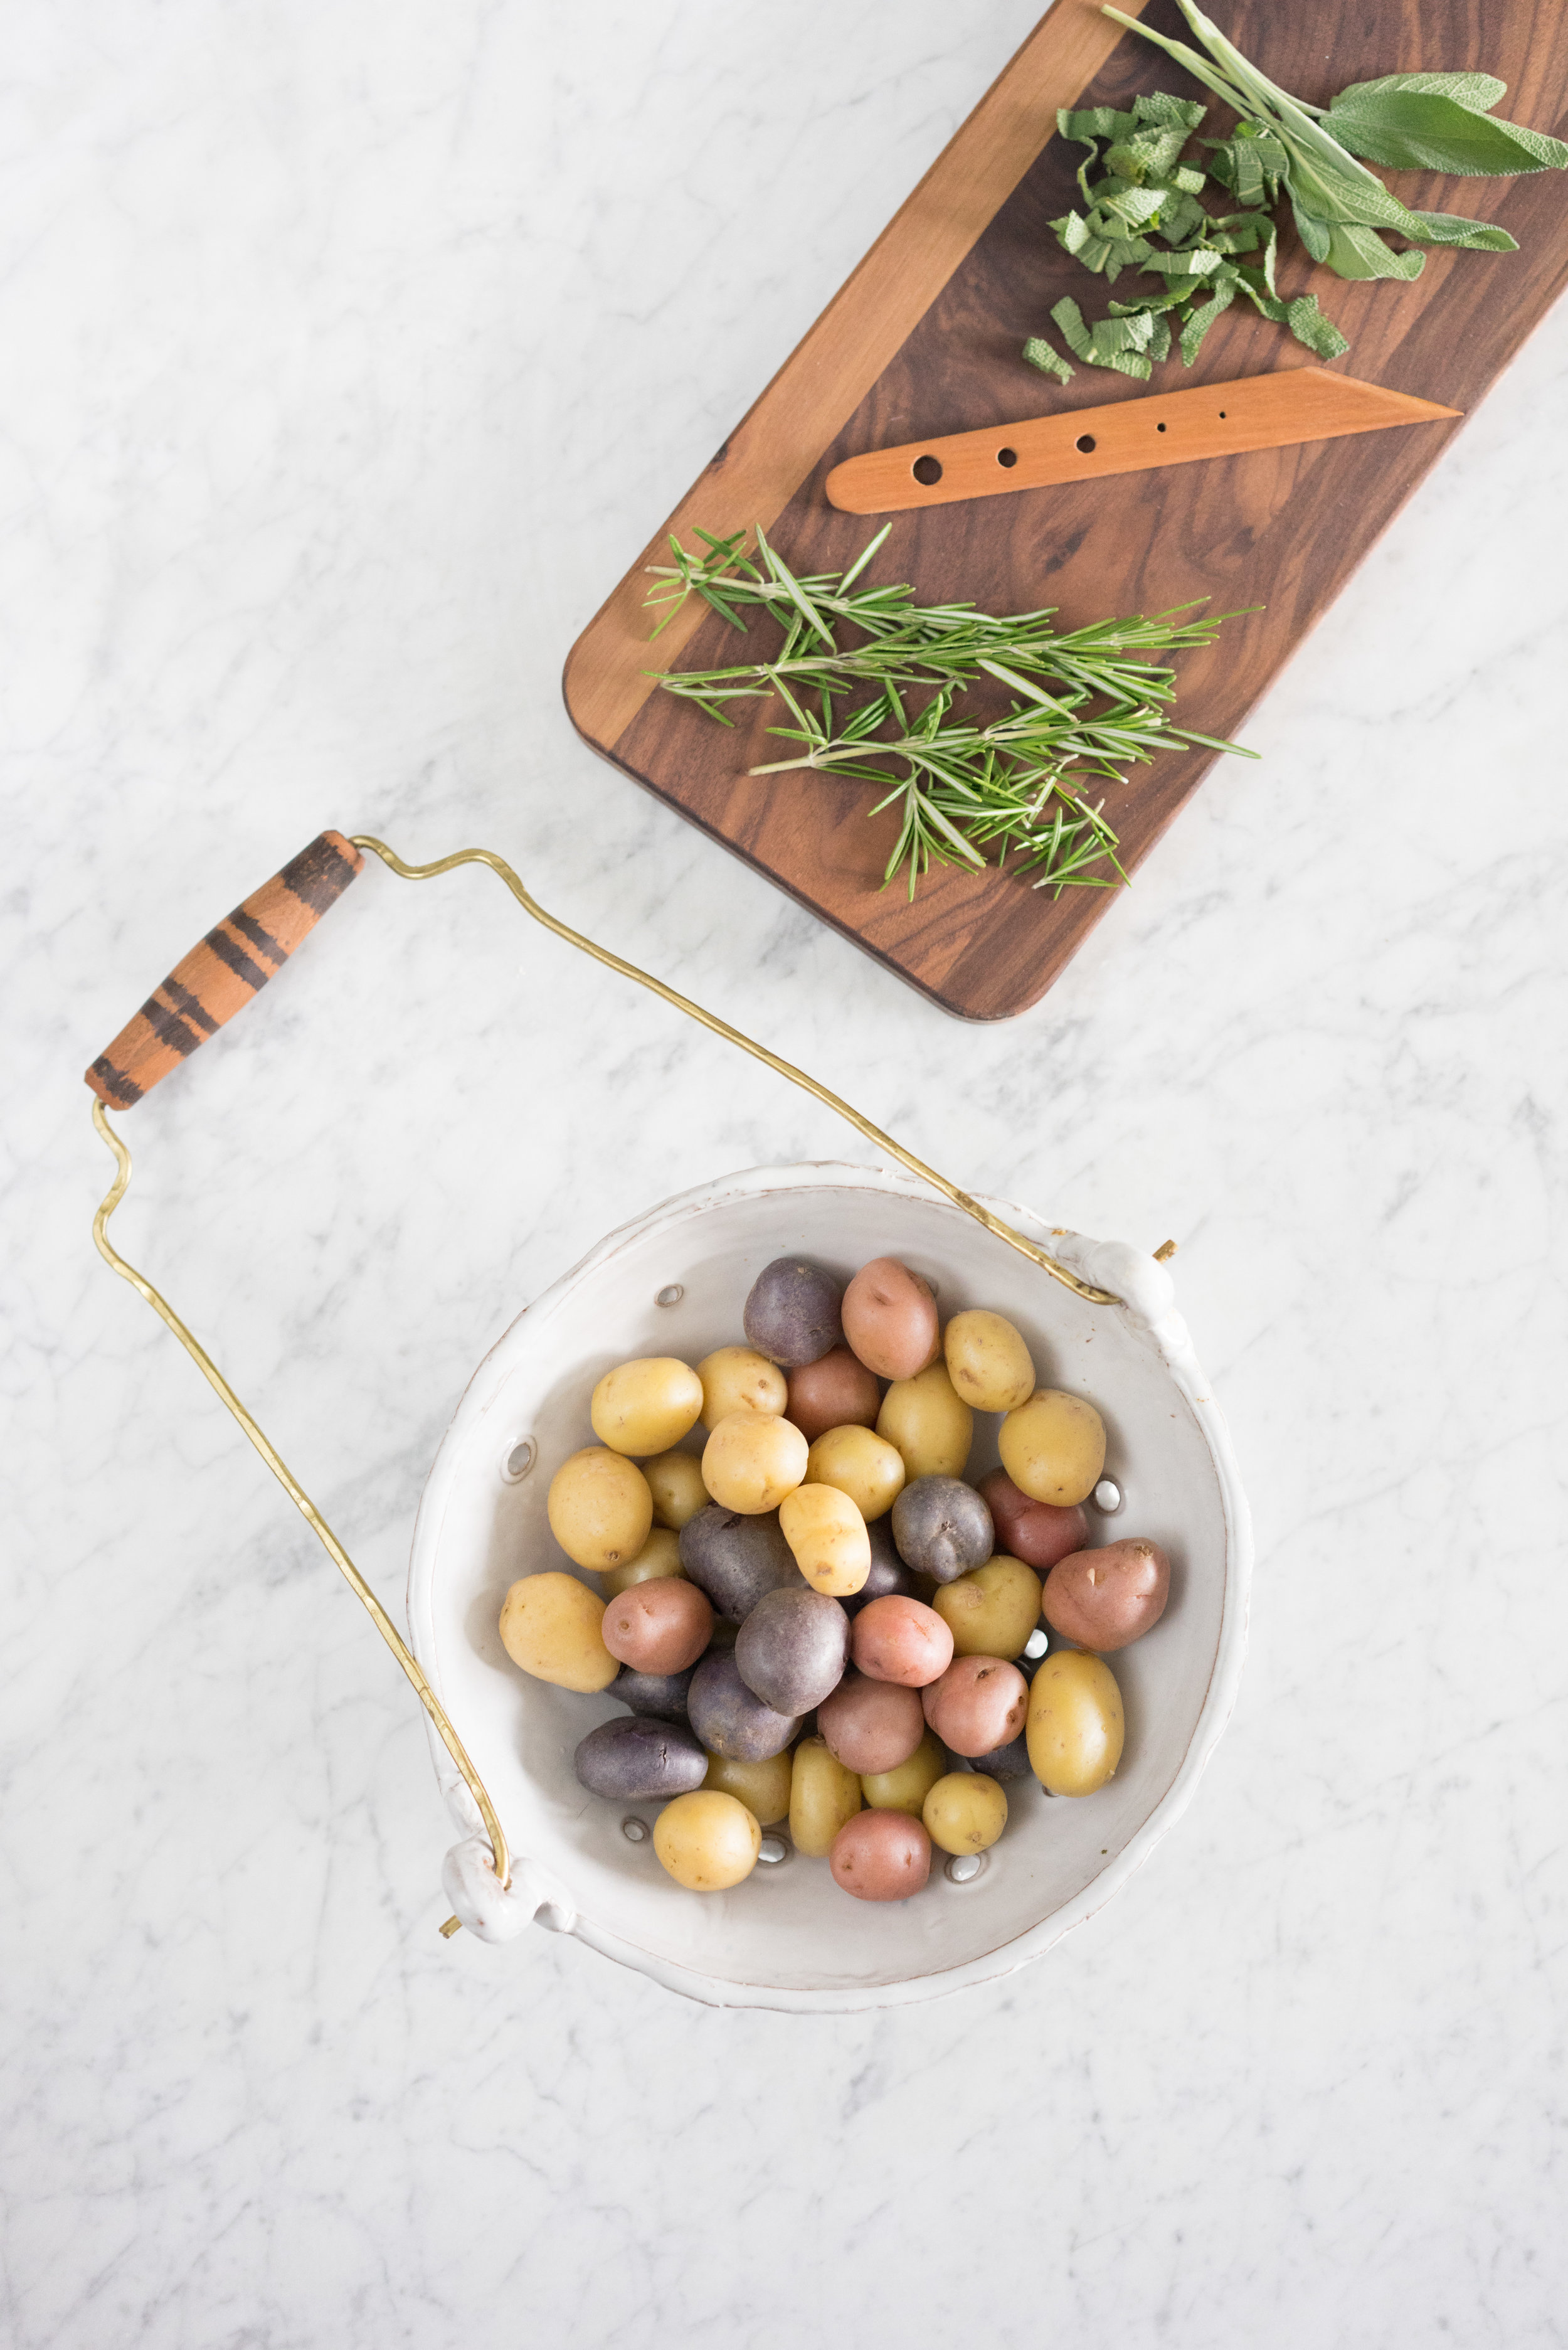 Herby, Garlicky Smashed Potatoes - the perfect side dish to accompany a meal!